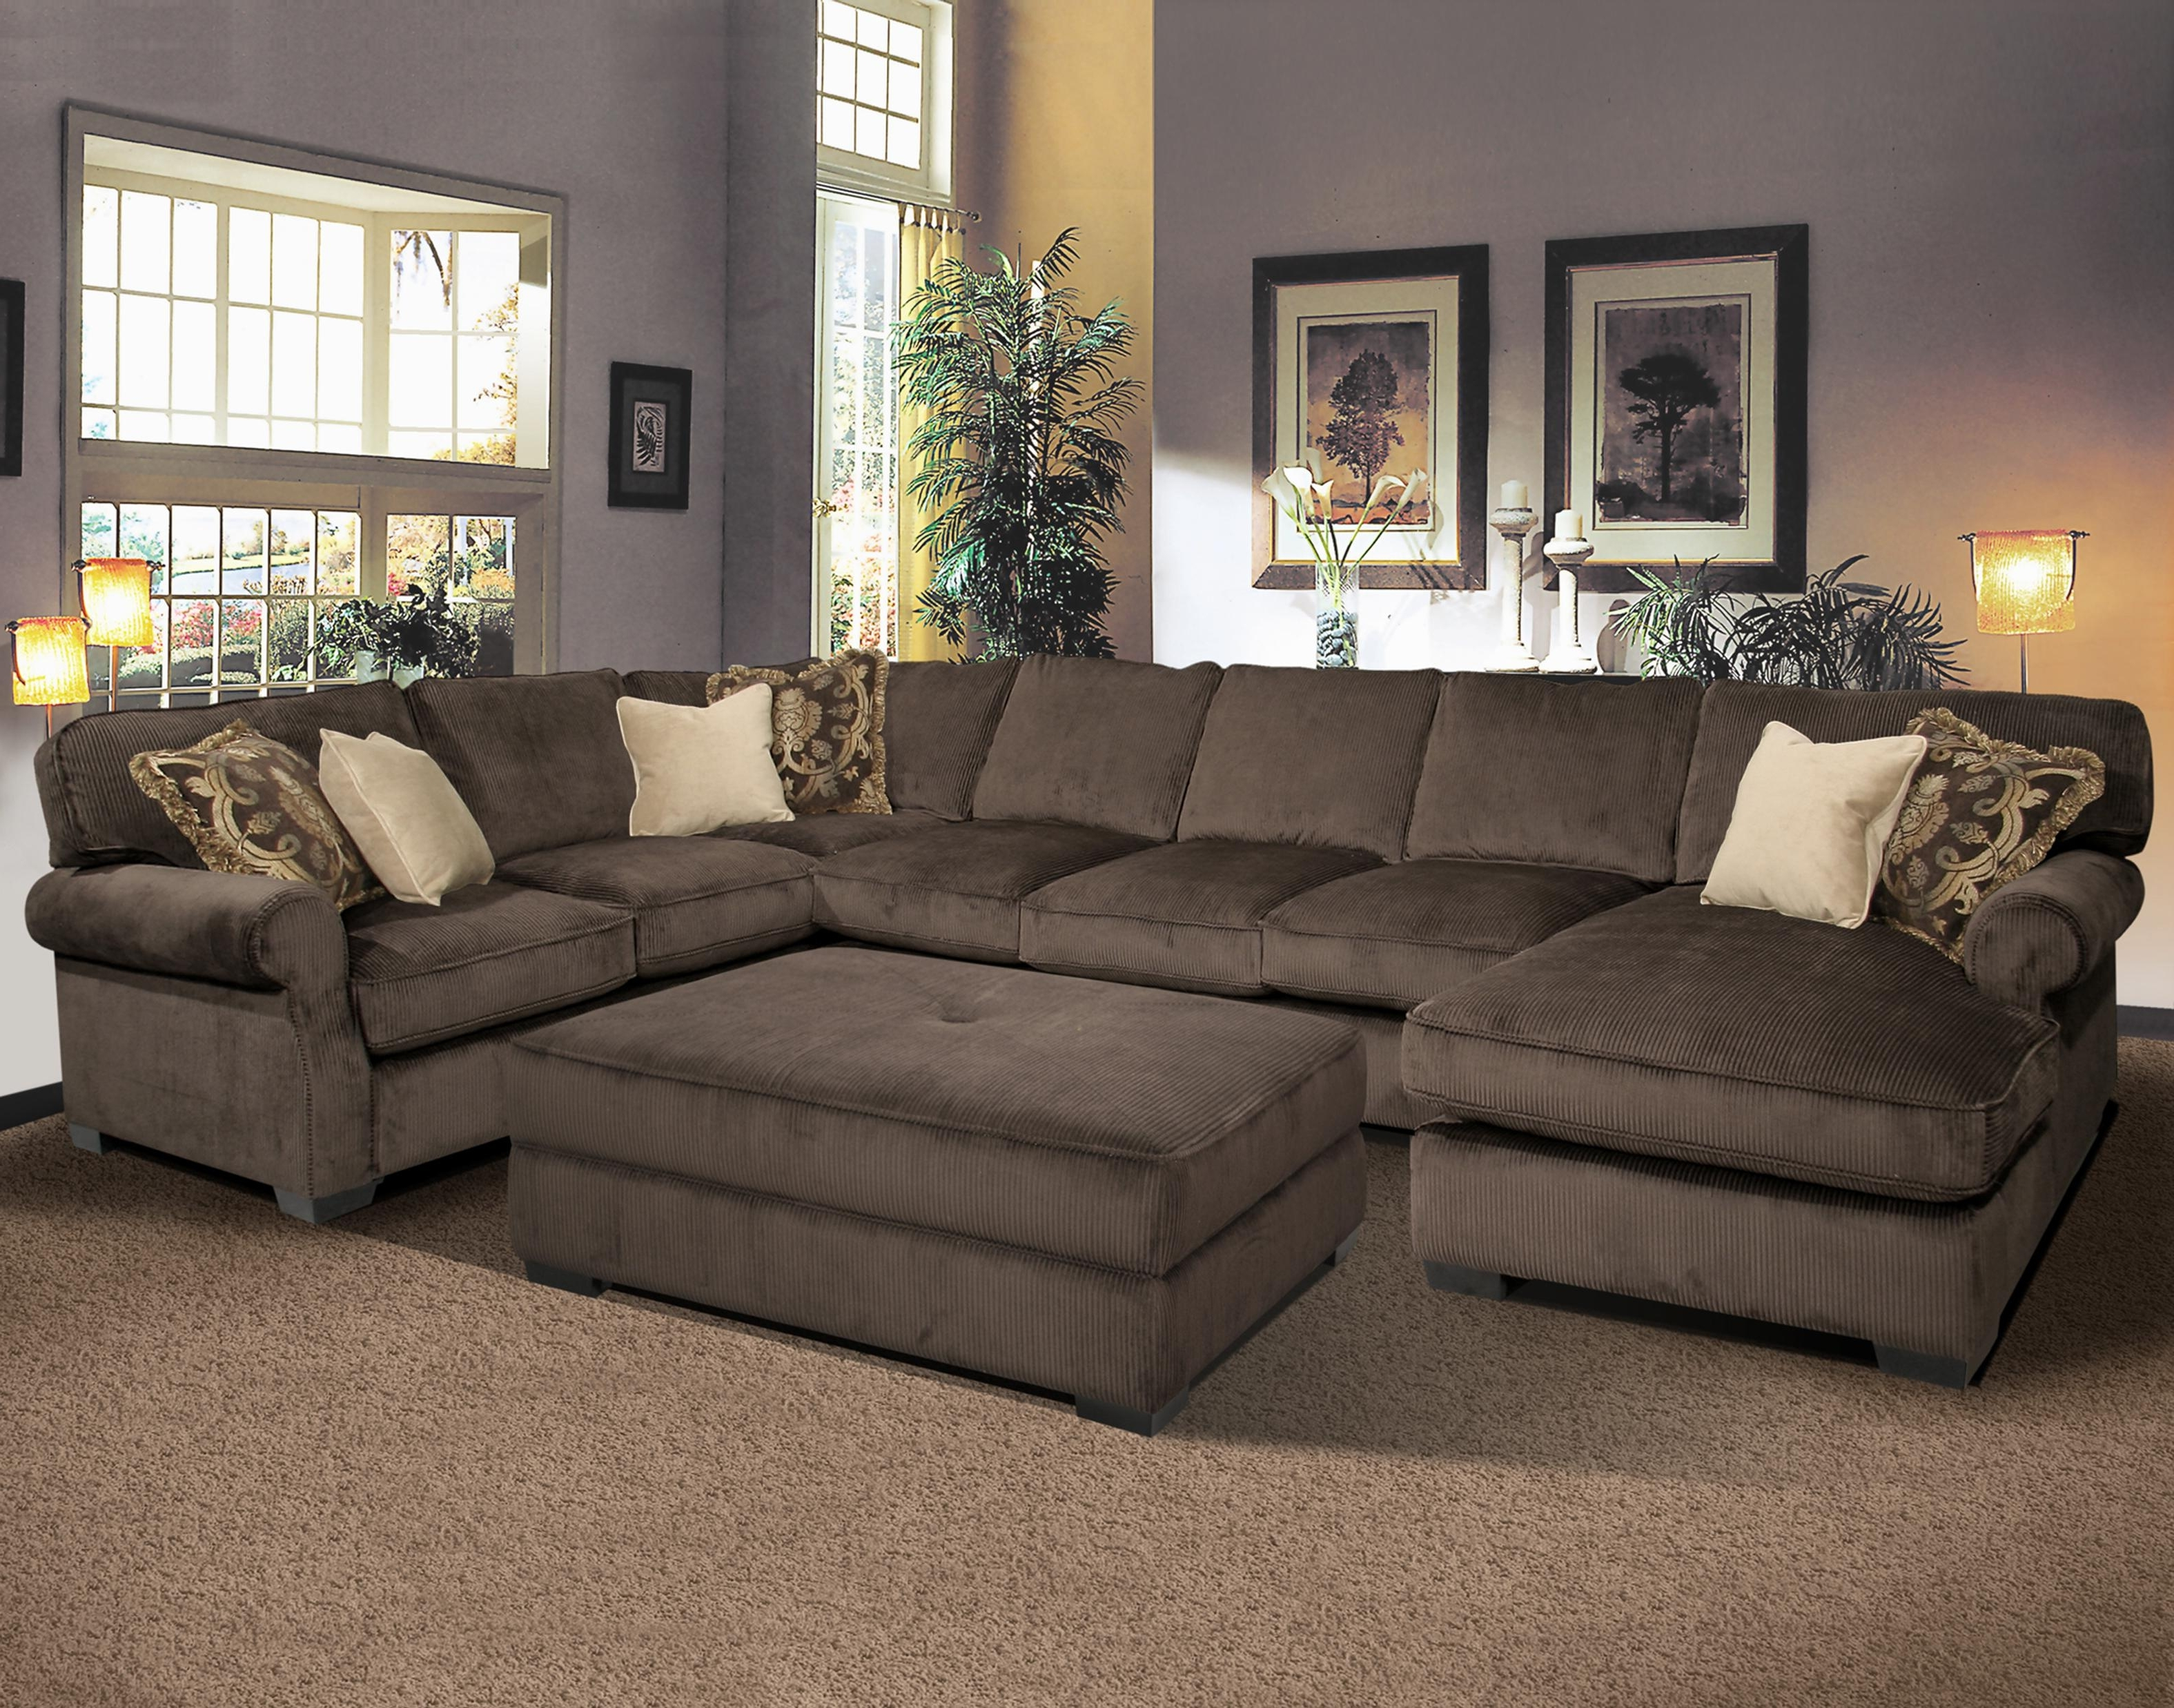 Sofa : L Shaped Sectional Sectional With Pull Out Bed Sofa Set For Most Up To Date Nz Sectional Sofas (View 14 of 15)